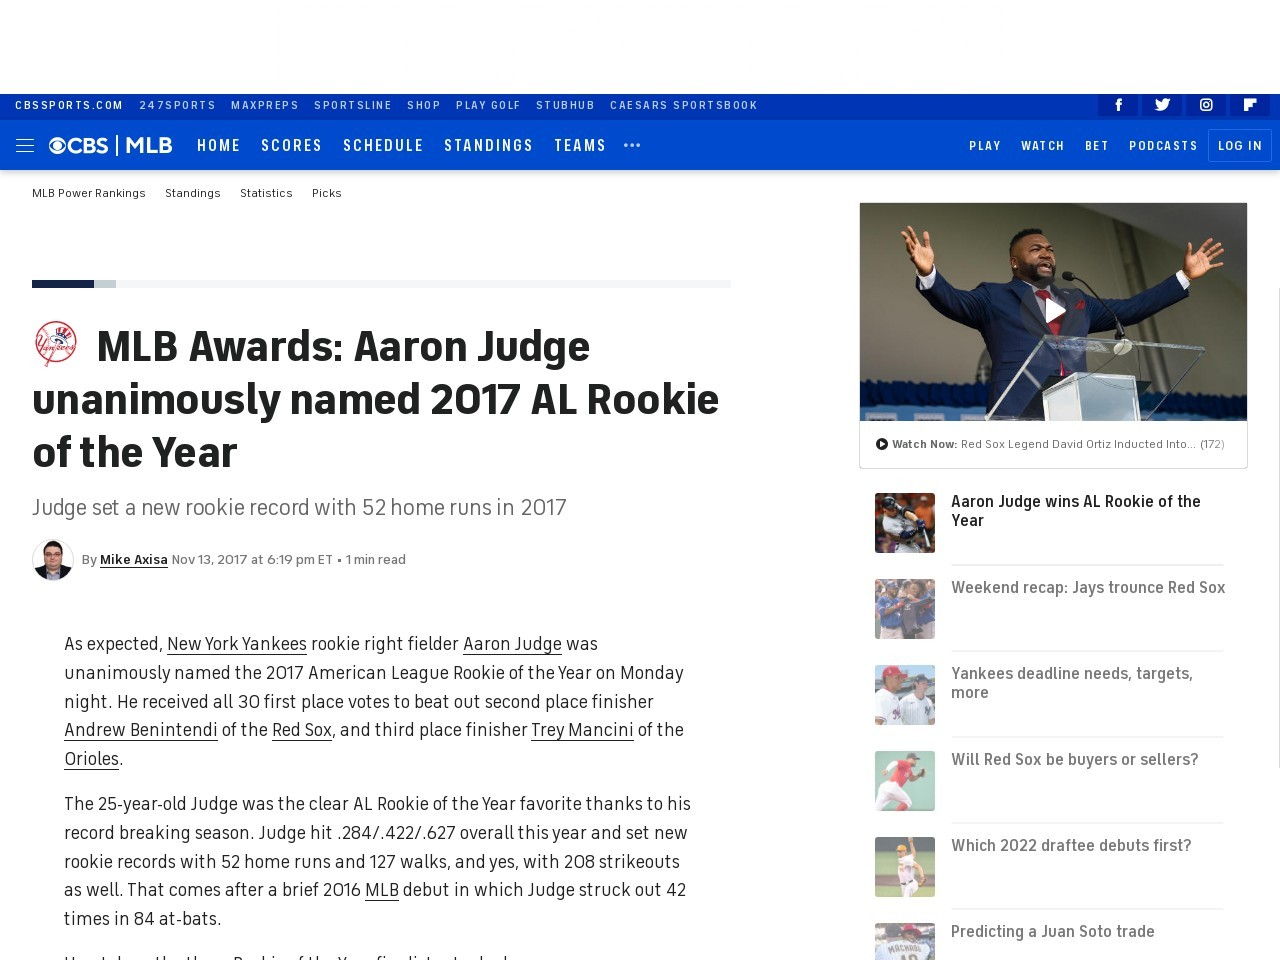 MLB Awards: Aaron Judge unanimously named 2017 AL Rookie of the Year